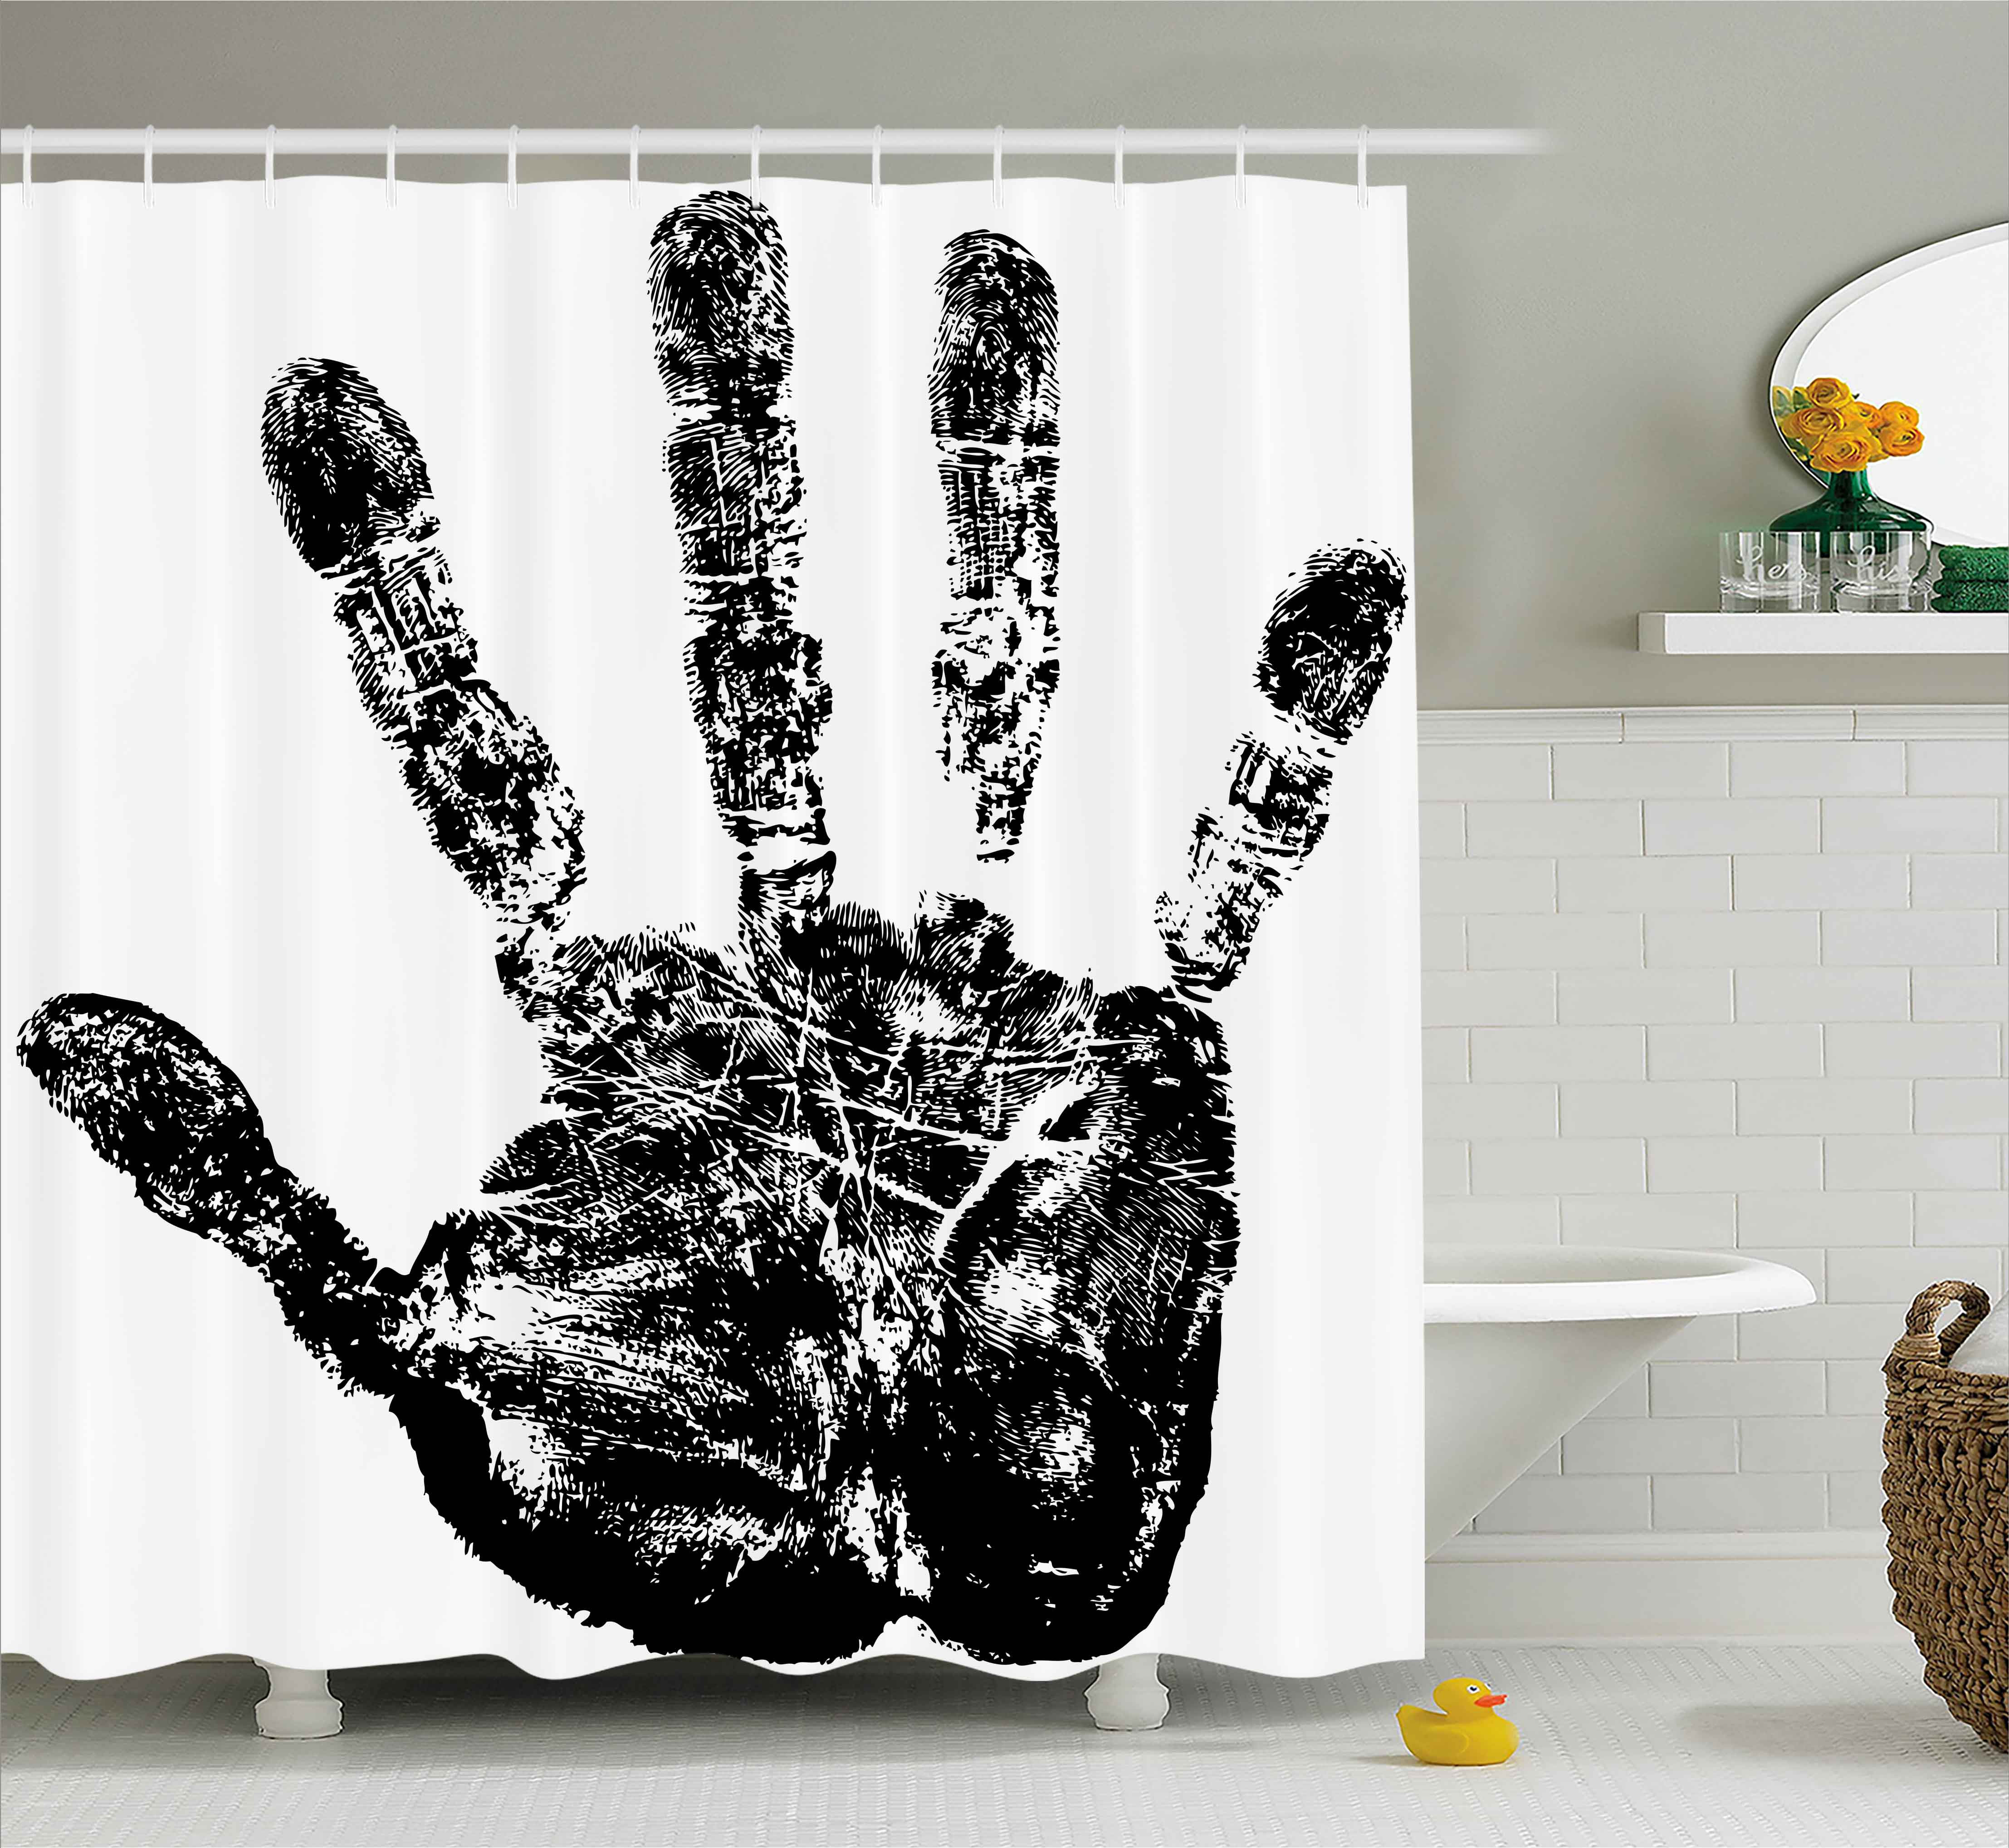 Modern Shower Curtain, Hand Print with Human Fingers in G...